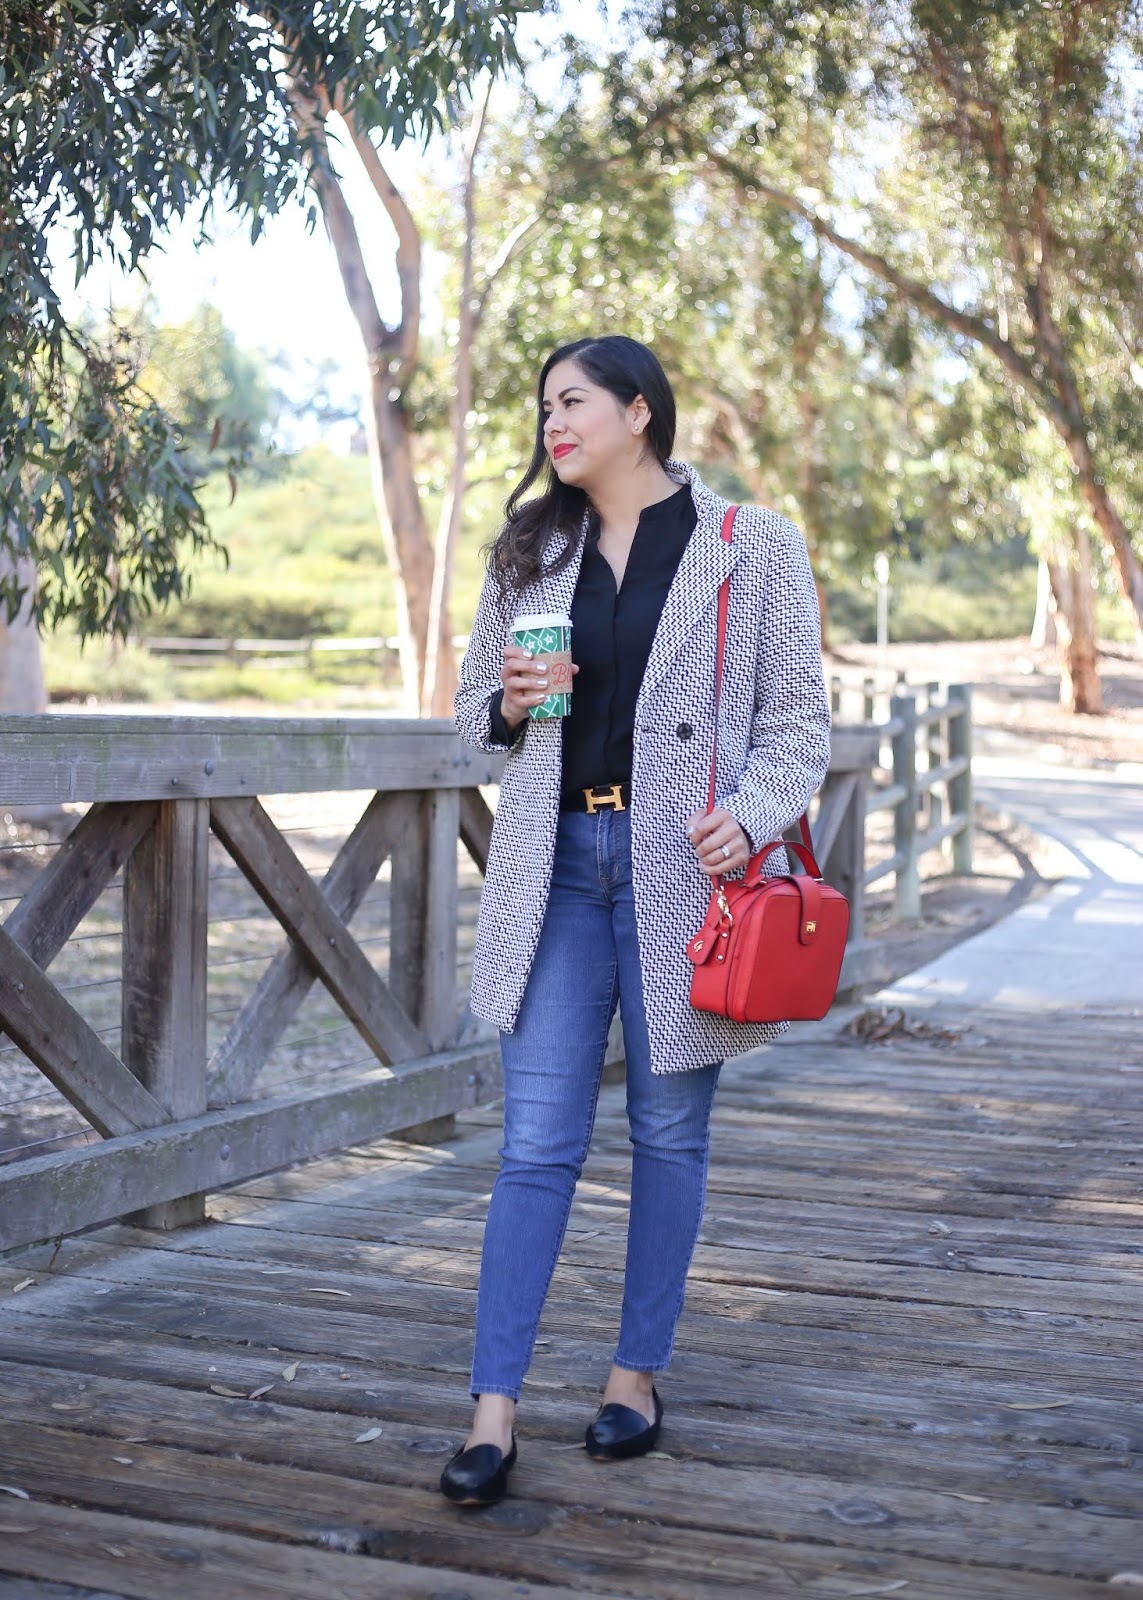 galian handbags, how to wear a red handbag, red top handle structured purse